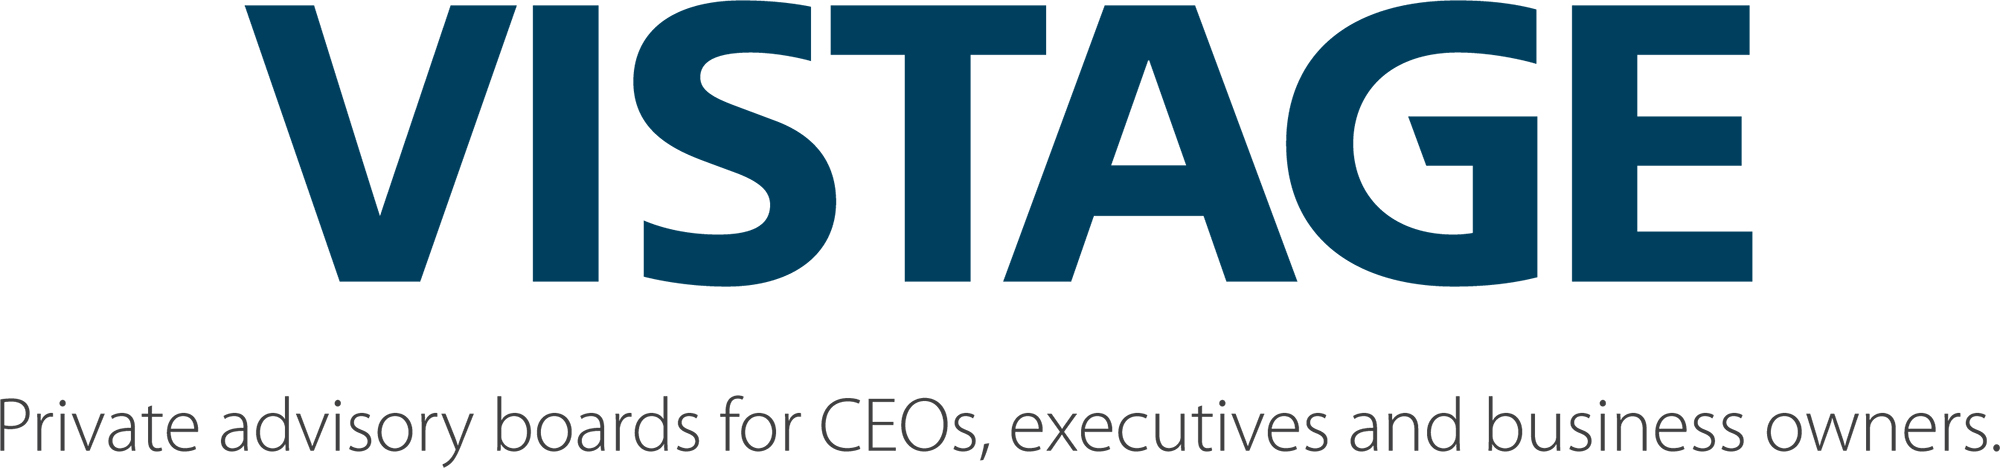 Q2 2014 Vistage CEO Confidence Index Results Released Today ...